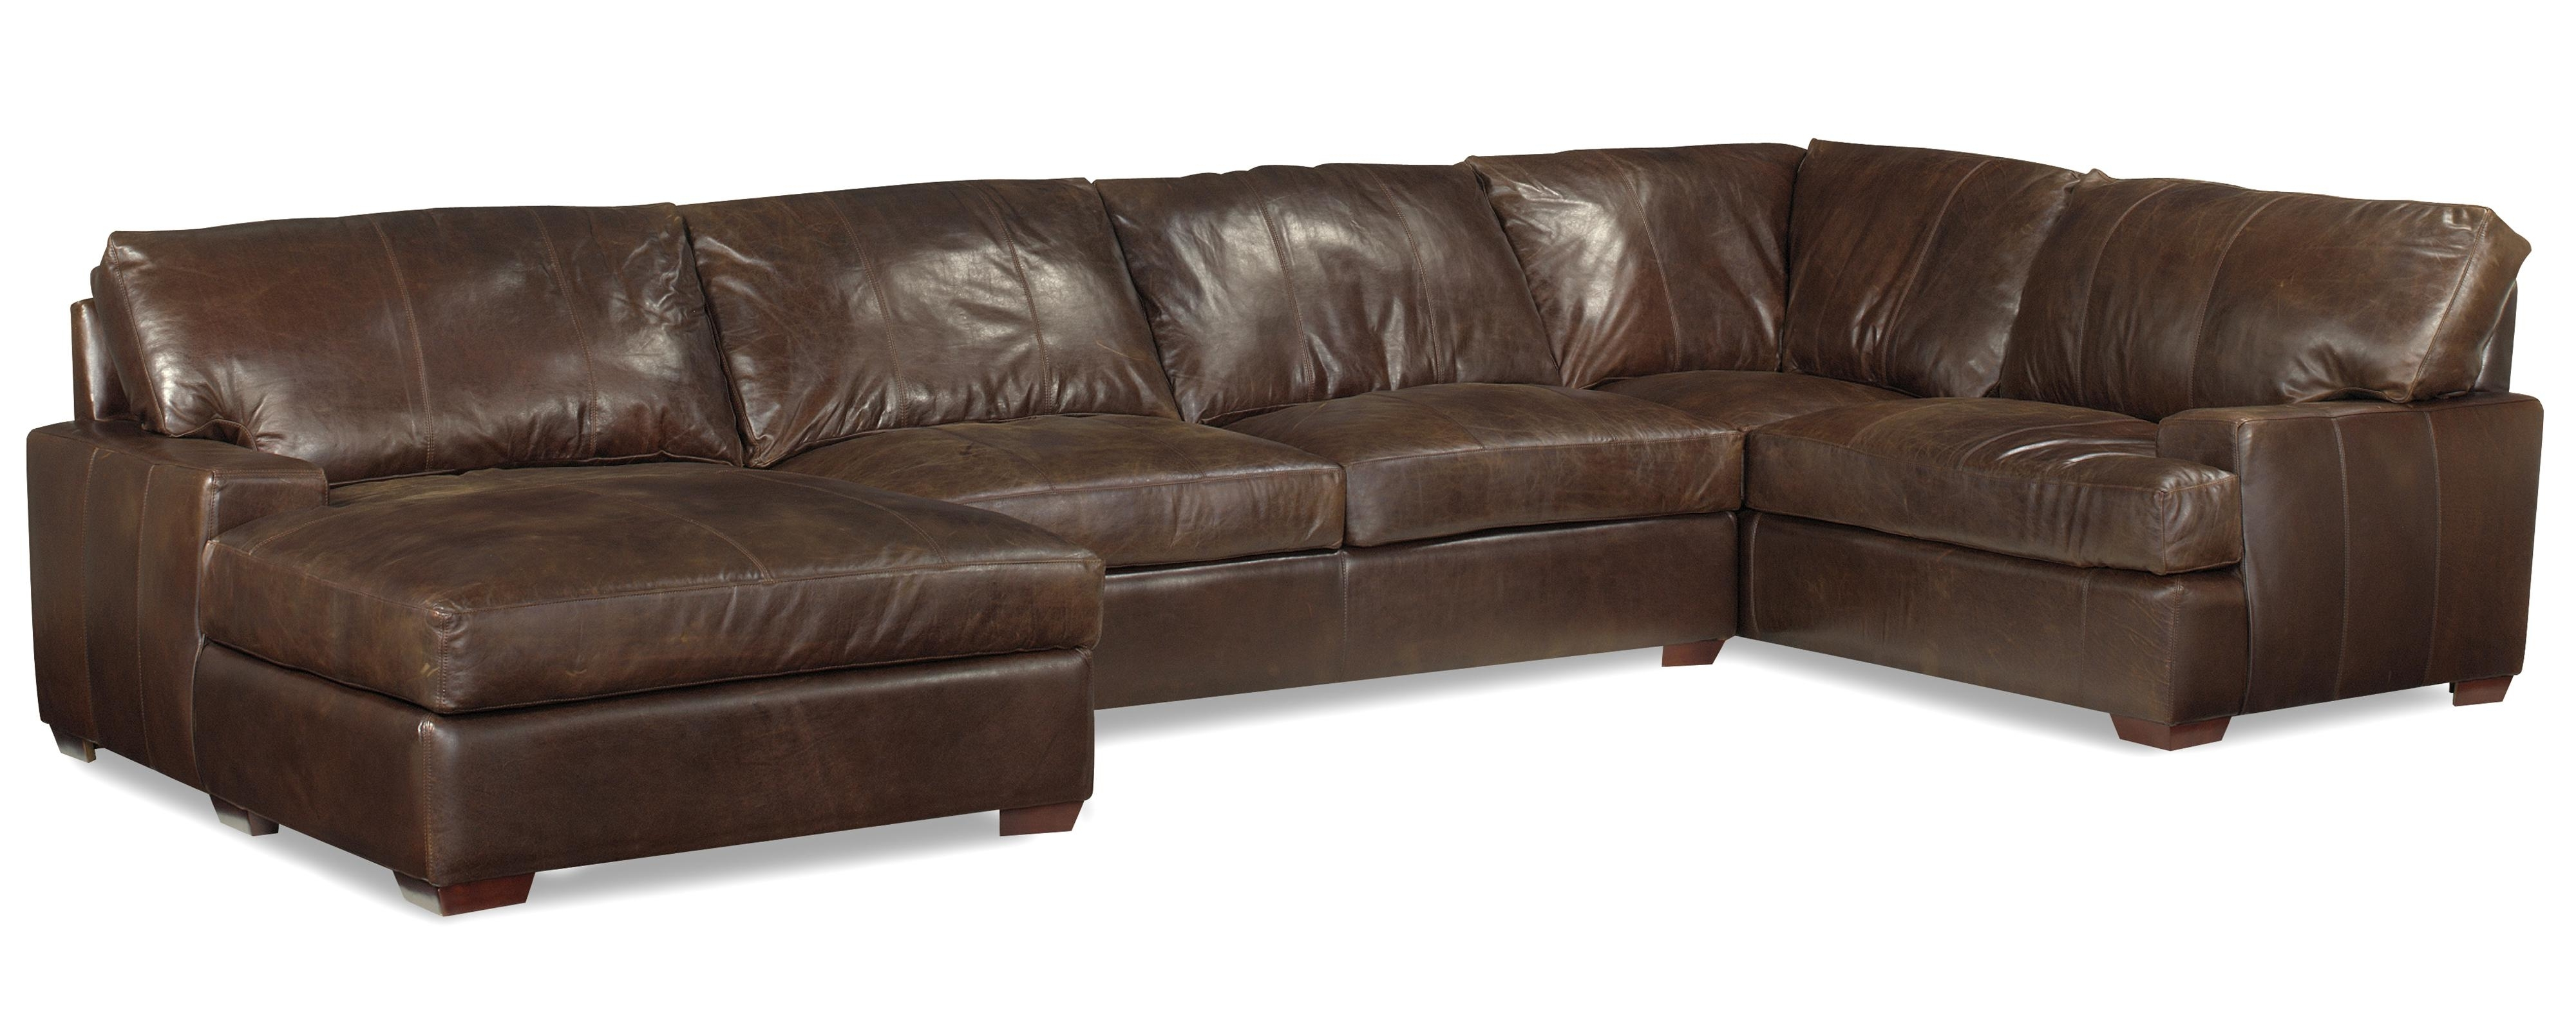 Trendy Couches With Chaise For Usa Premium Leather 3635 Track Arm Sofa Chaise Sectional W/ Block (View 9 of 15)